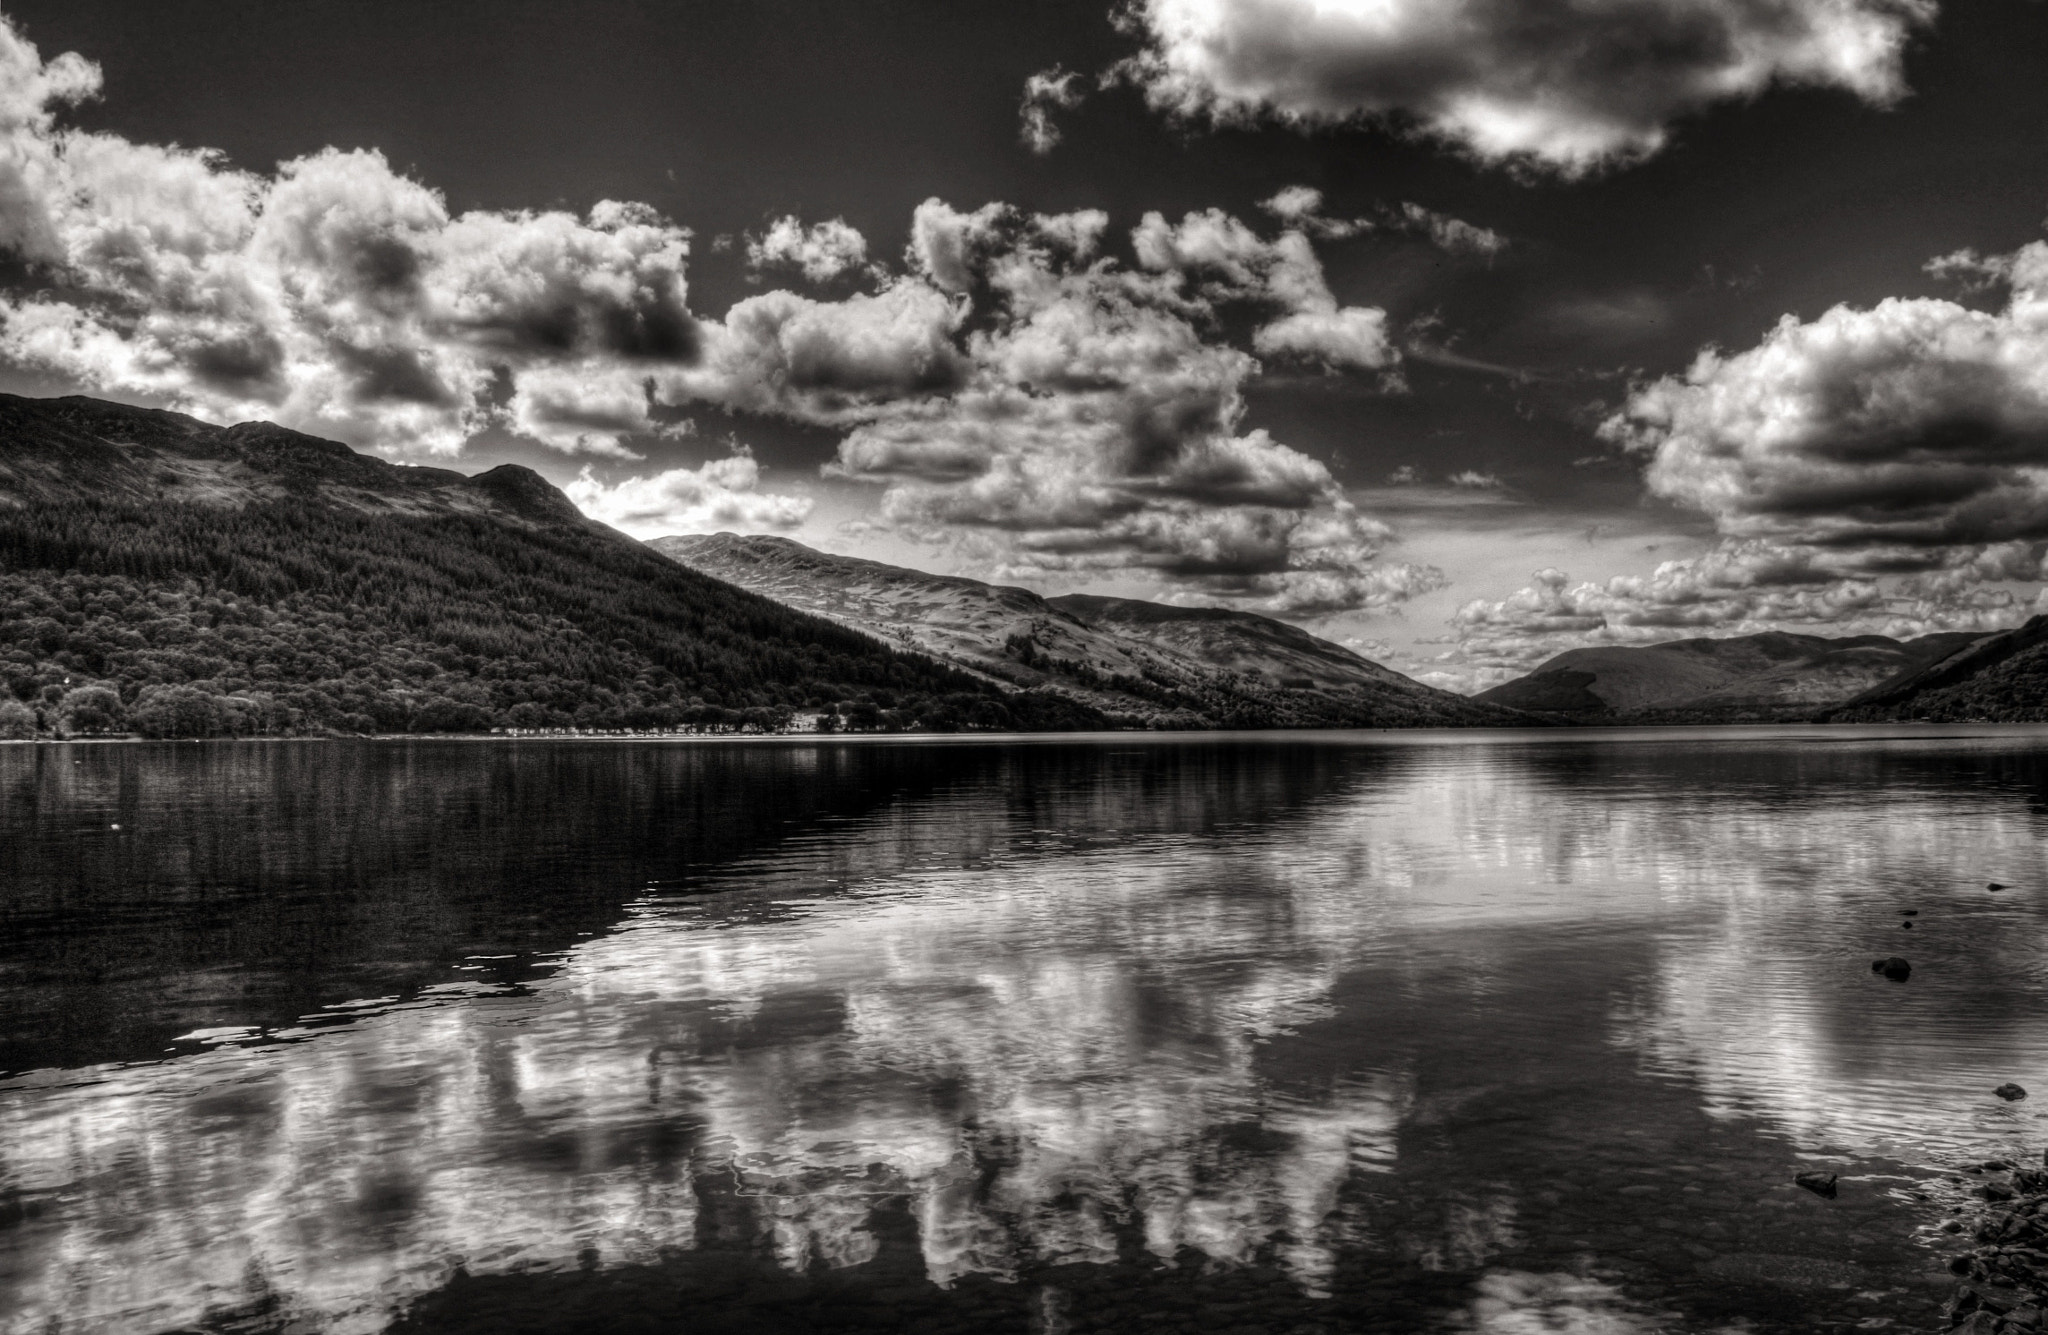 Photograph Looking Over Loch Earn by Hilda Murray on 500px